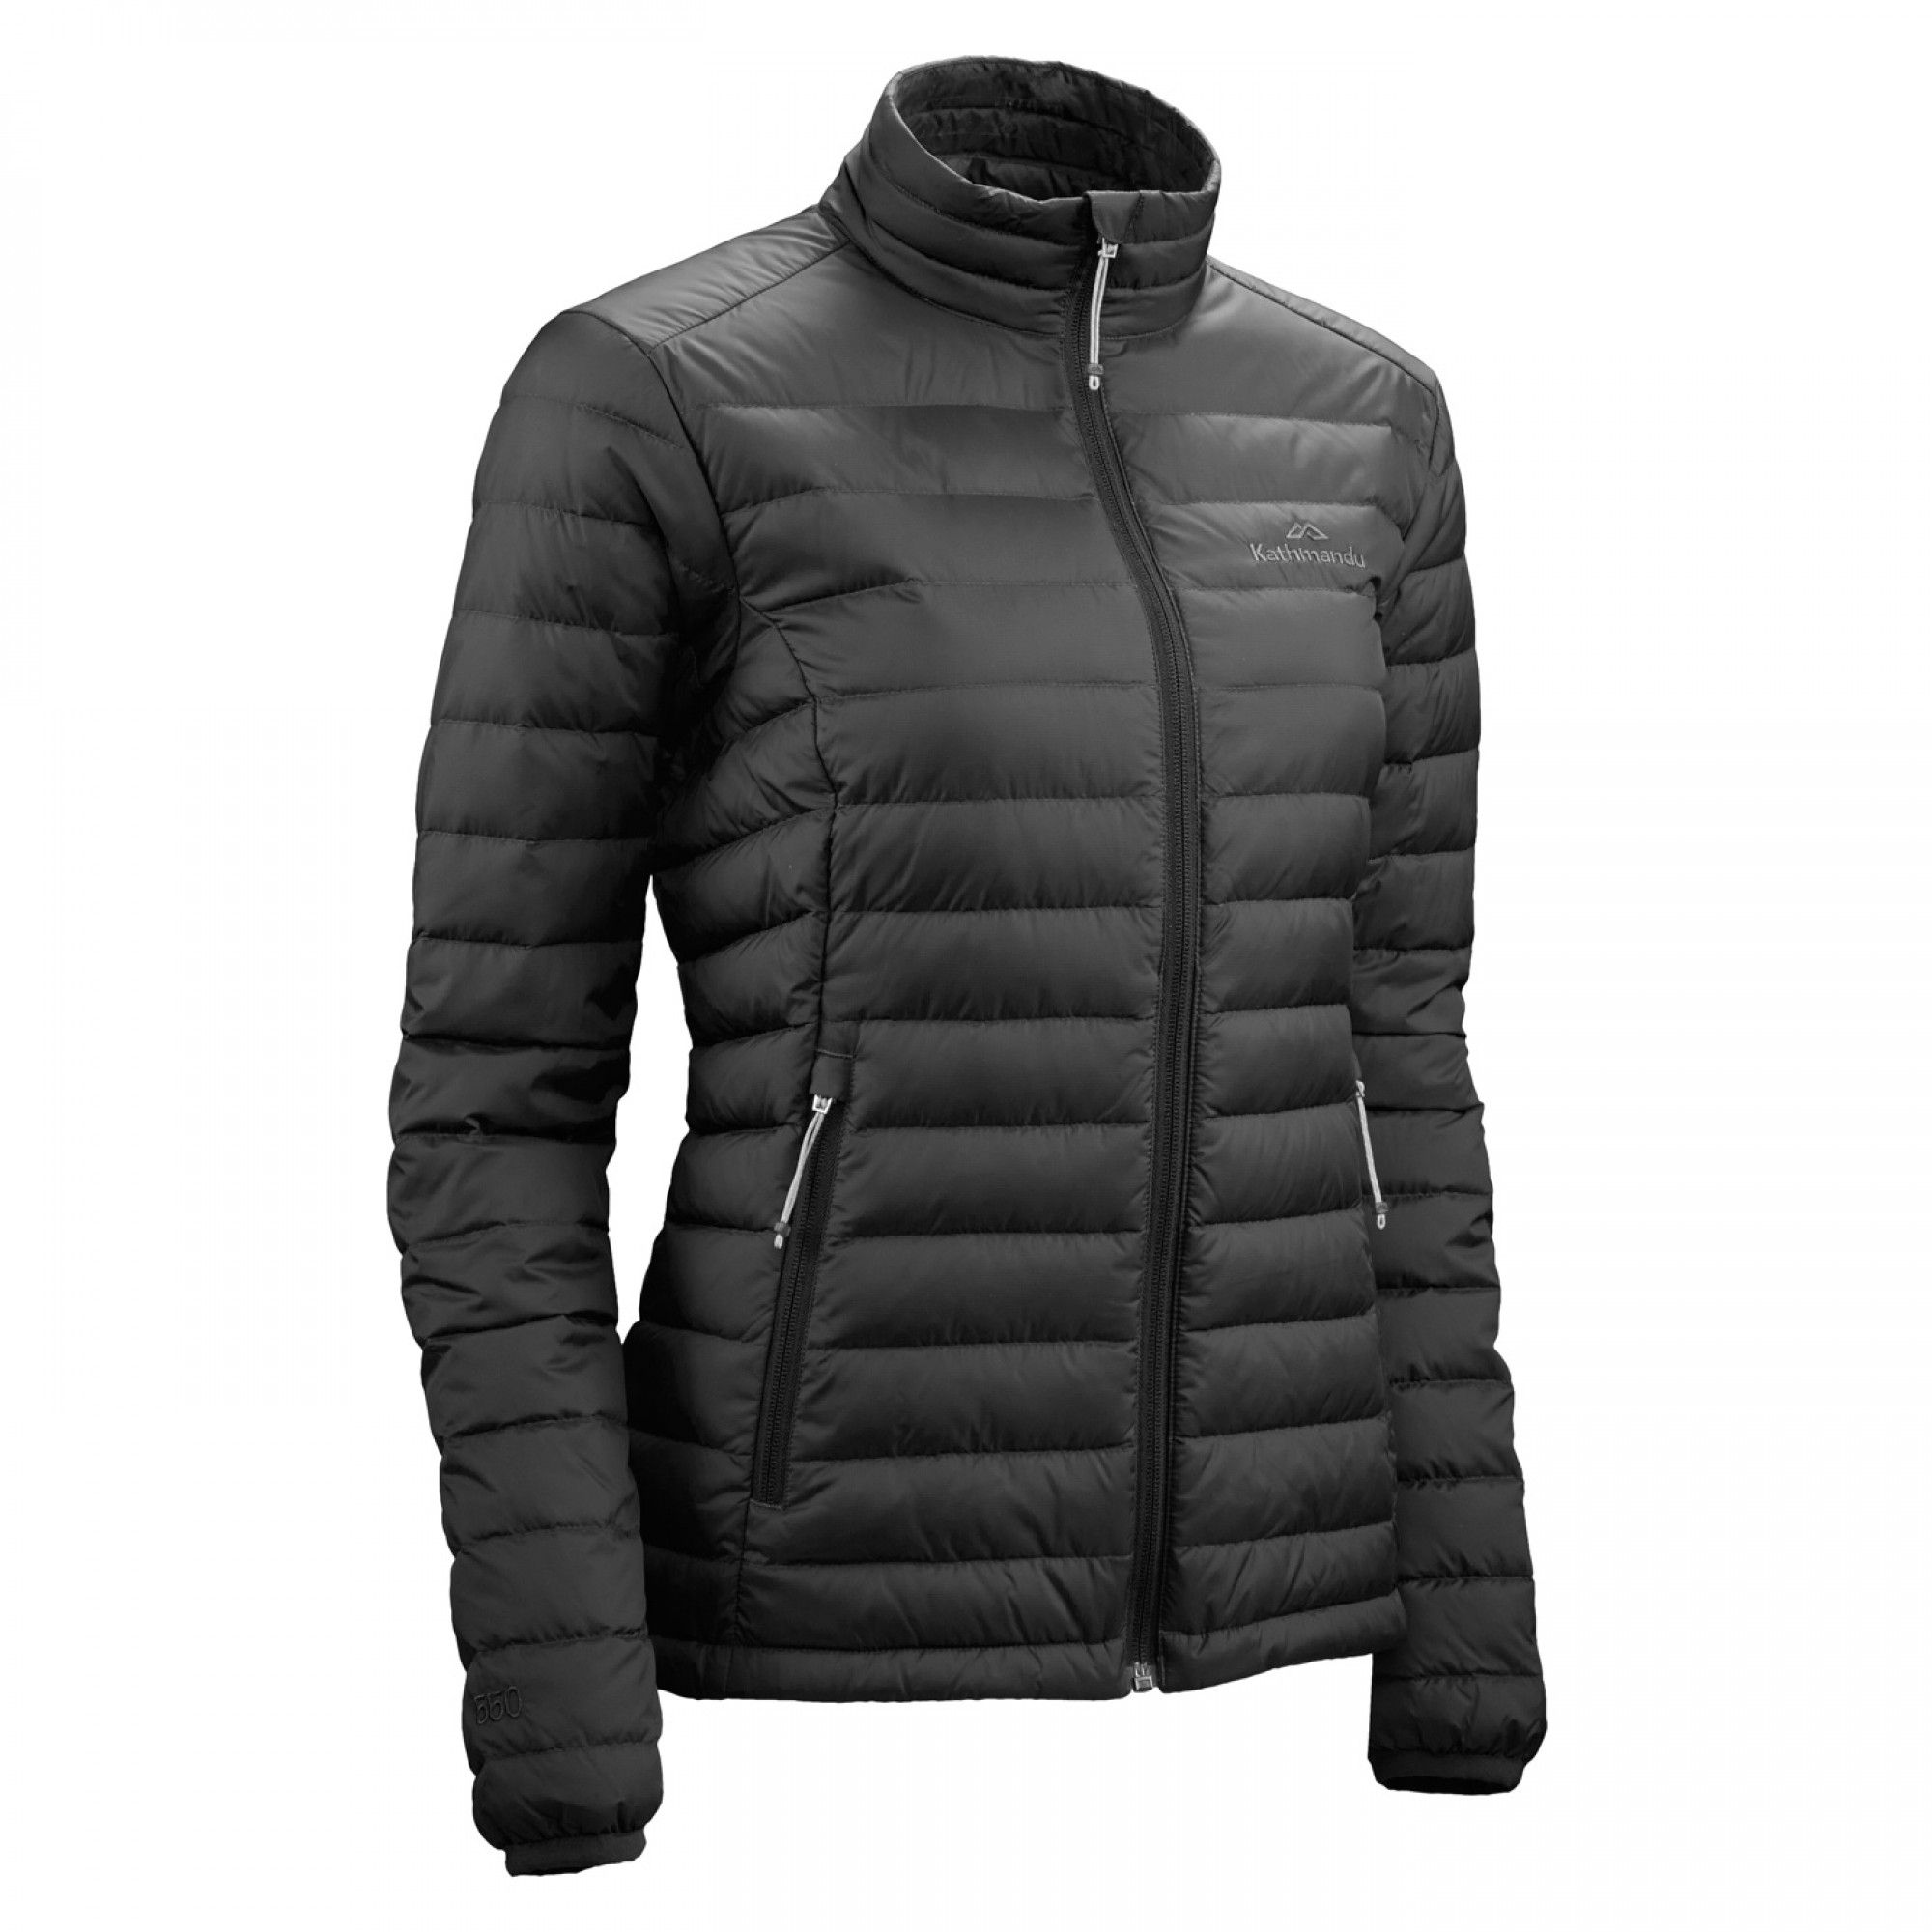 Buy Heli Women's Lightweight Down Jacket - Black online at ...